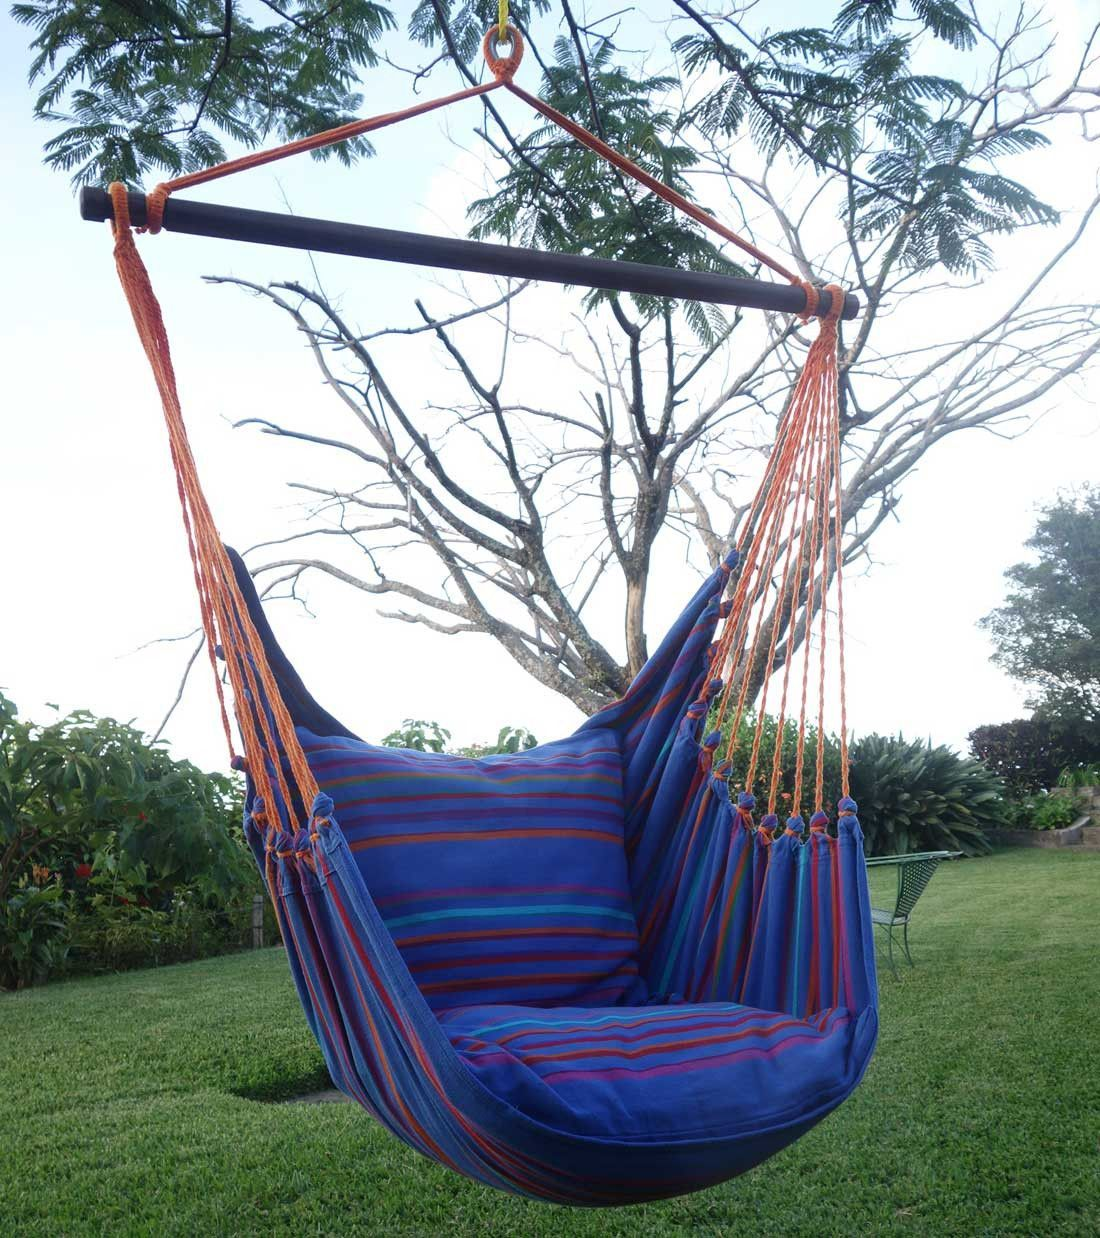 m stand chair main about combo ls multiple details hanging options swing itm jumbo ly sunnydaze bs jhcs hammock amp